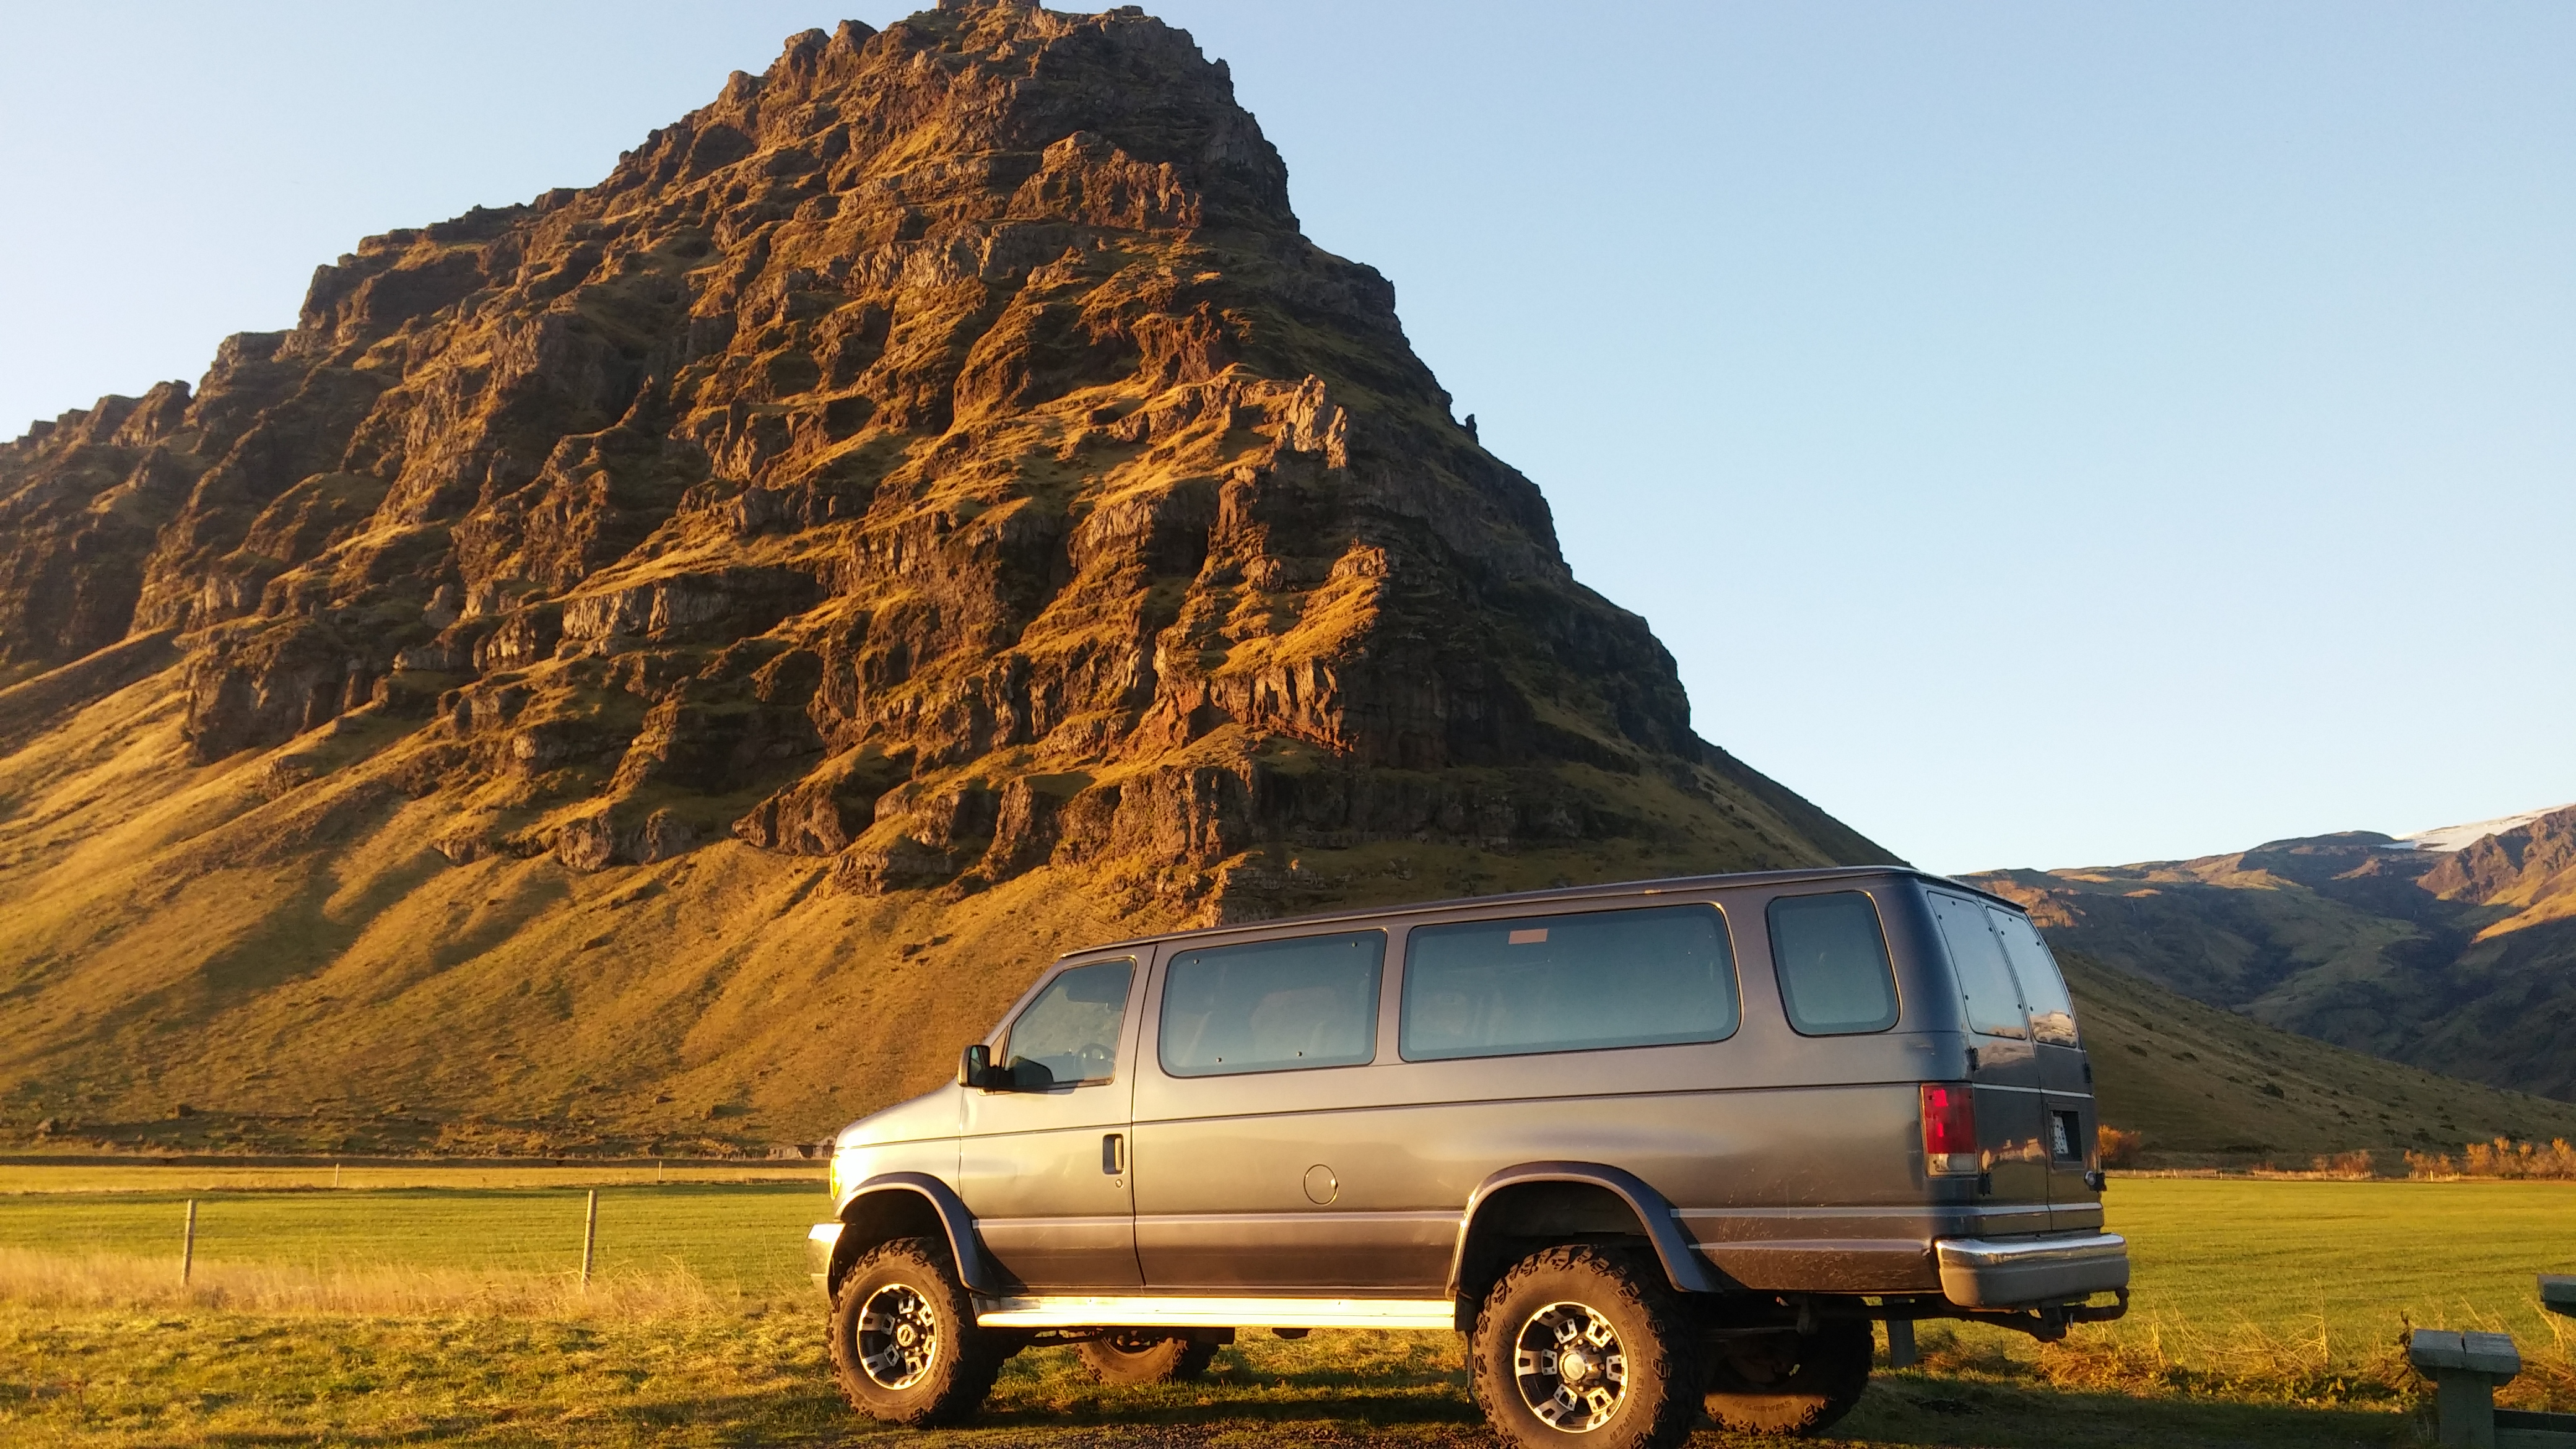 A Super Jeep en route to Hrísey Island via Iceland's northern country roads.